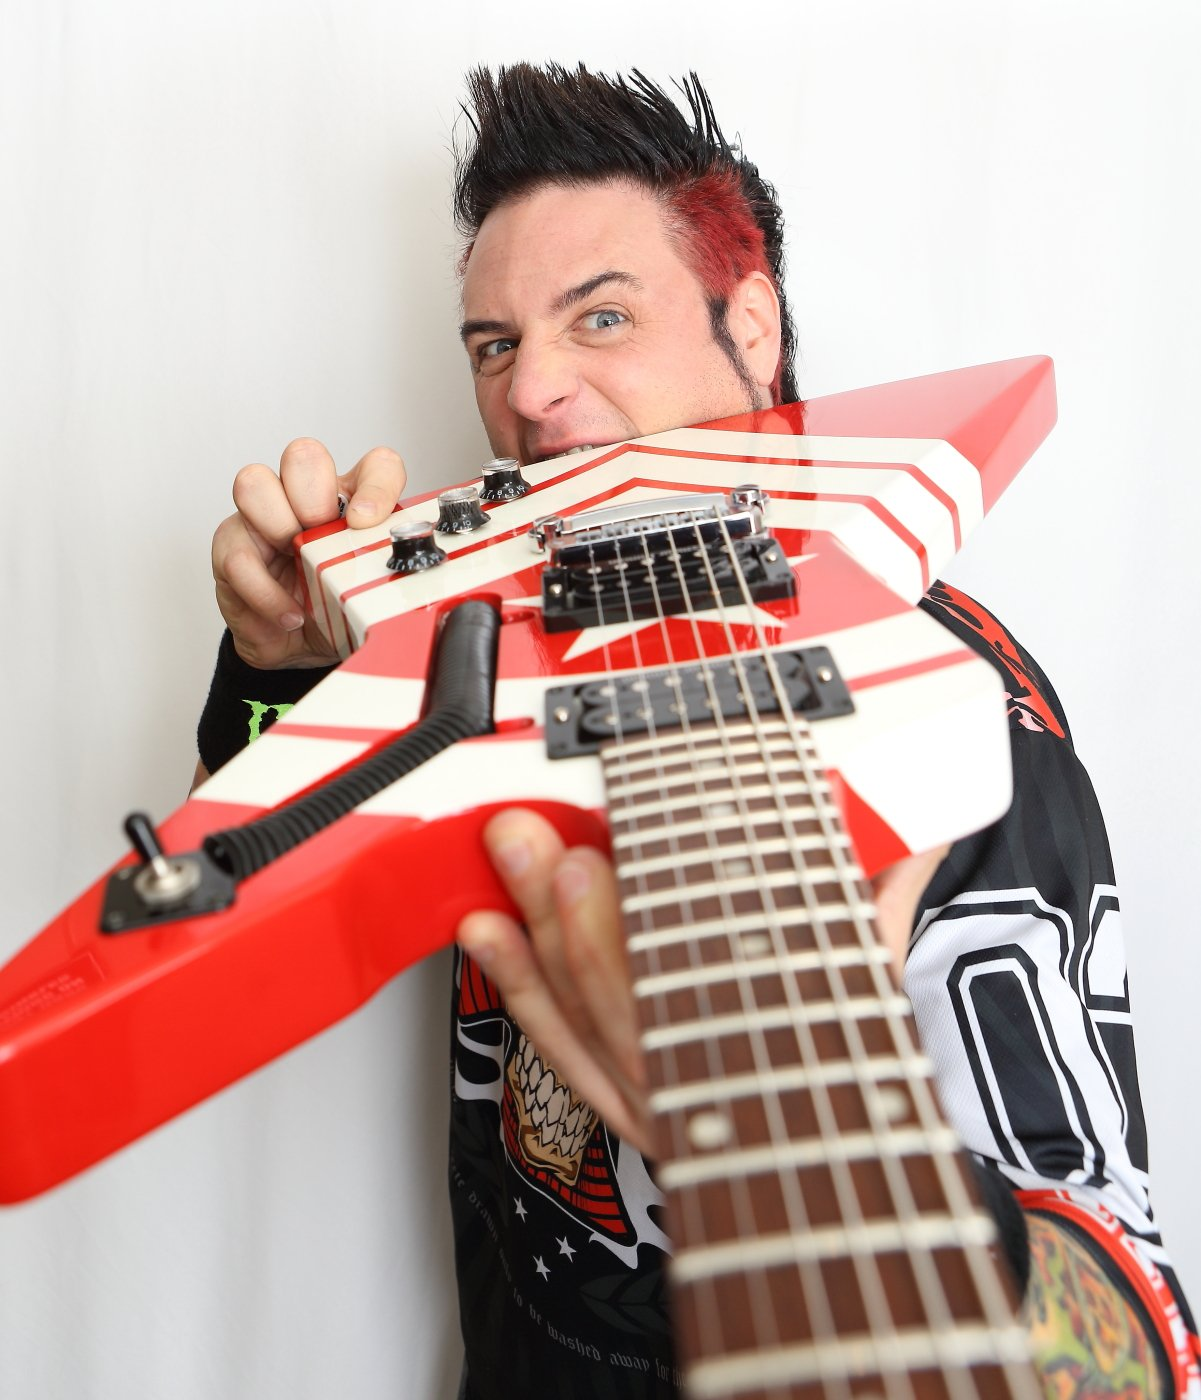 Jason Hook, guitarist of Five Finger Death Punch pictured with his M4 Sherman signature guitar. Photo by Harry Reese